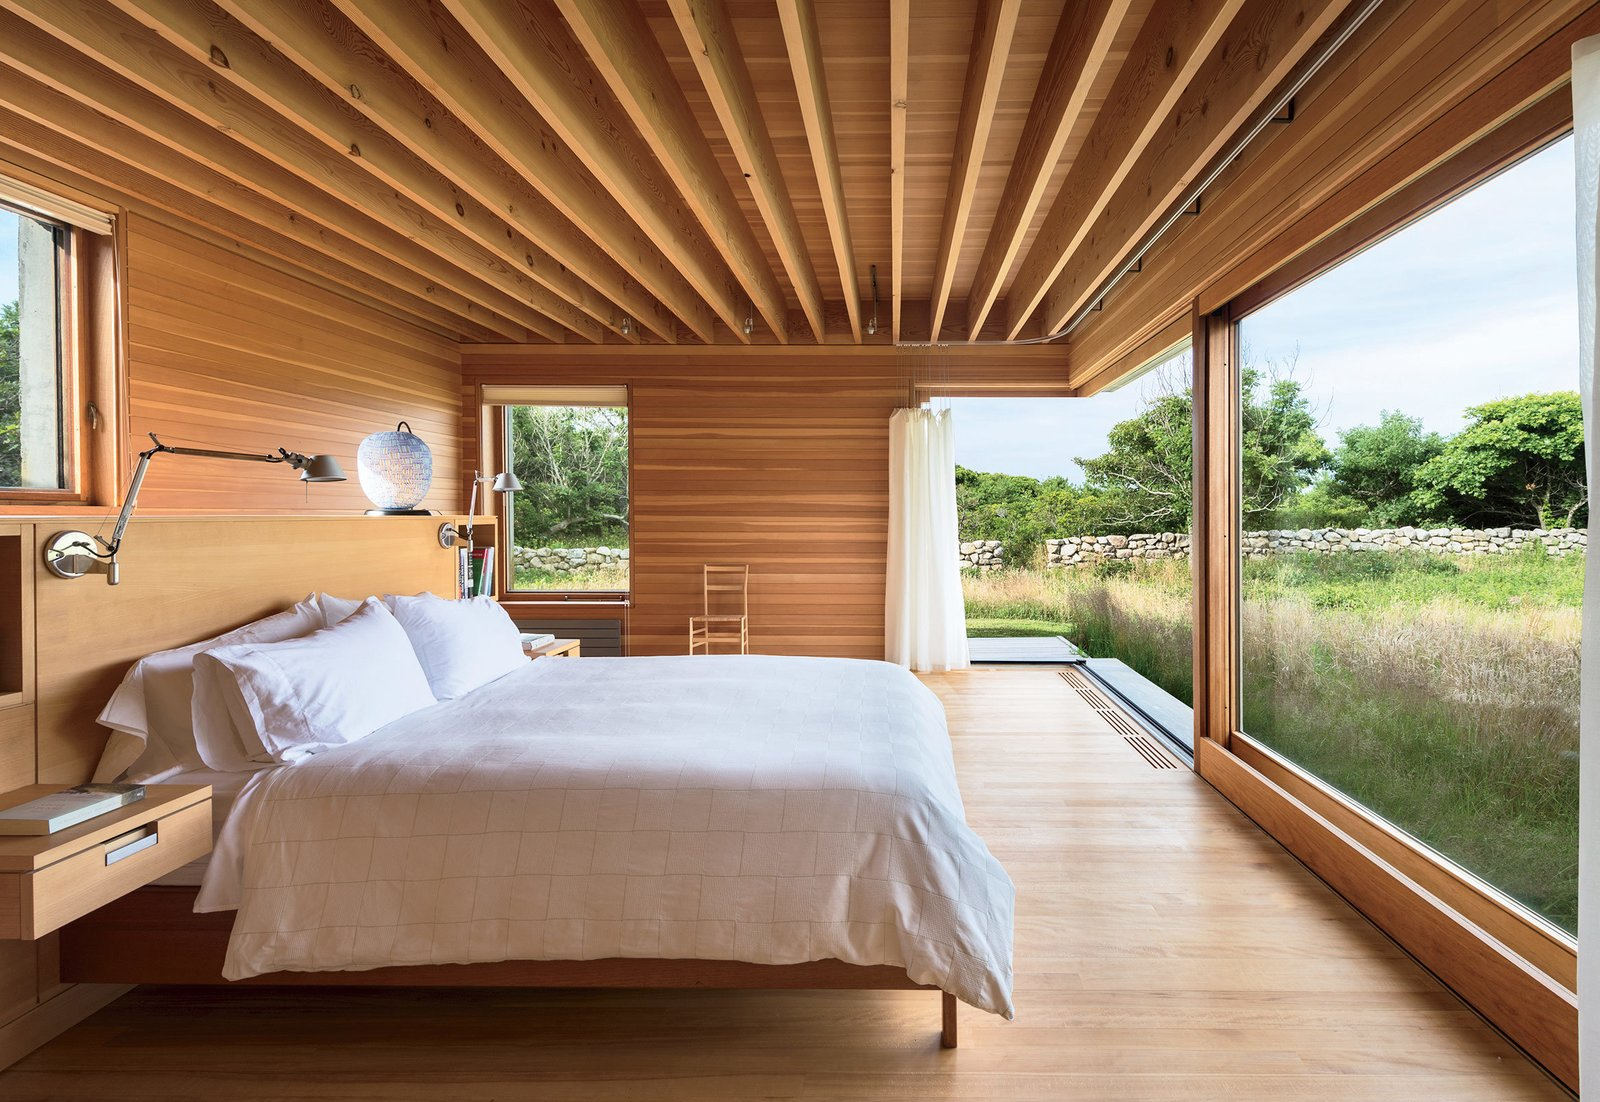 Large windows and sliding doors with maximal operability are placed throughout, including the master bedroom, where expansive lift-and-slide mechanisms line three exterior walls. The room is furnished by a custom mahogany headboard and bed frame by Larry Hepler and a glass Murano lamp by Massimiliano Schiavon. Tagged: Bedroom, Bed, Wall Lighting, and Medium Hardwood Floor. Six Concrete Boxes Make a Jaw-Dropping Martha's Vineyard Home - Photo 8 of 11